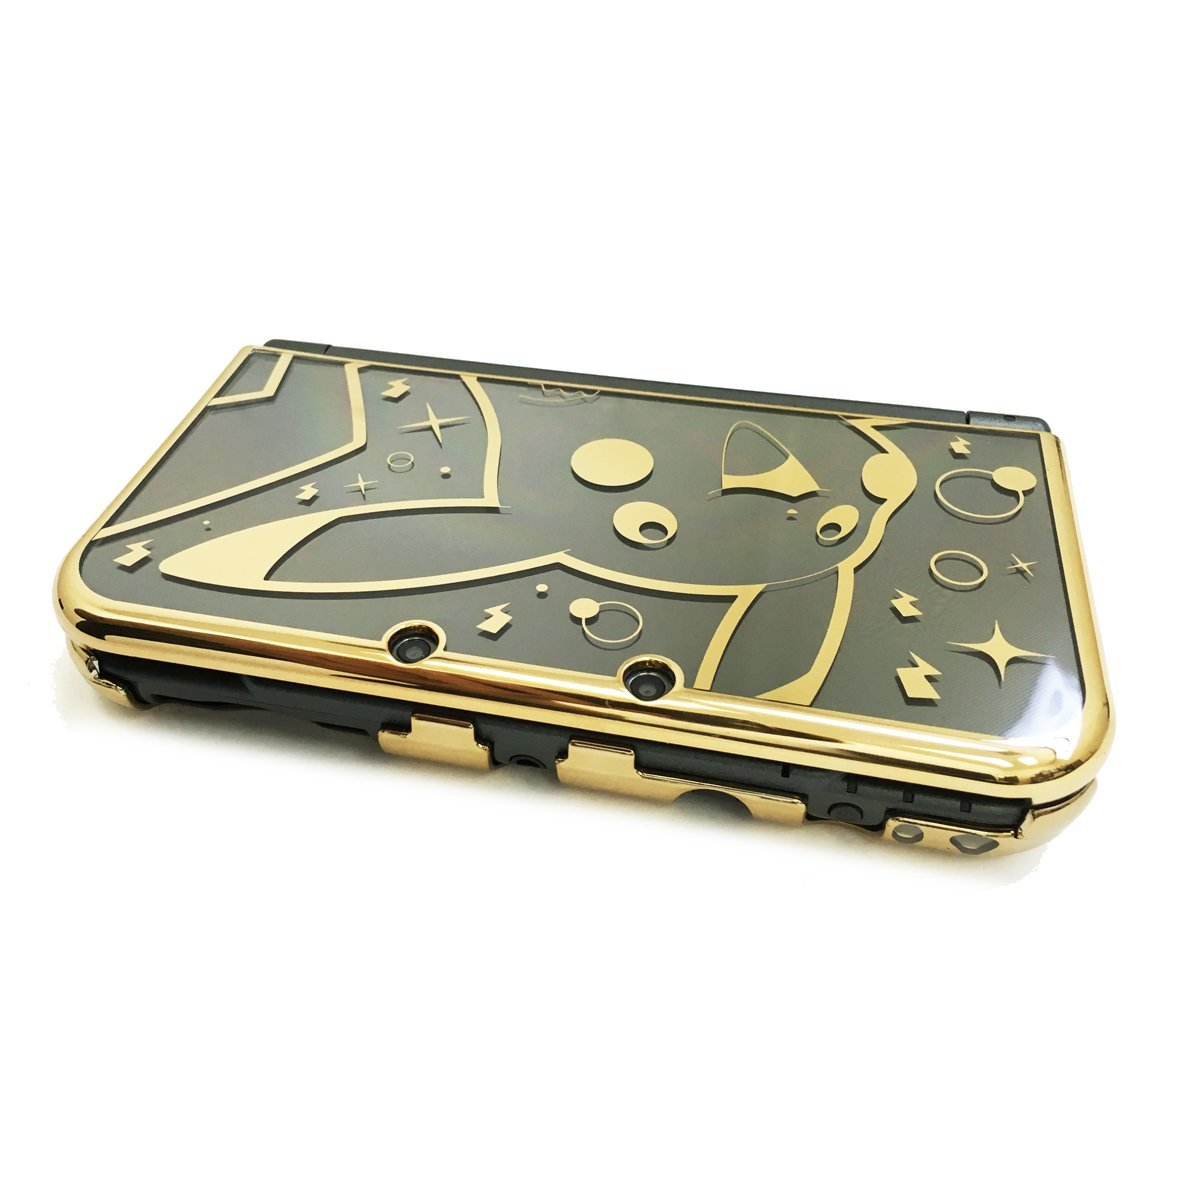 HORI Official Pikachu Premium Gold Protector for New Nintendo 3DS XL Licensed by Nintendo & Pokemon